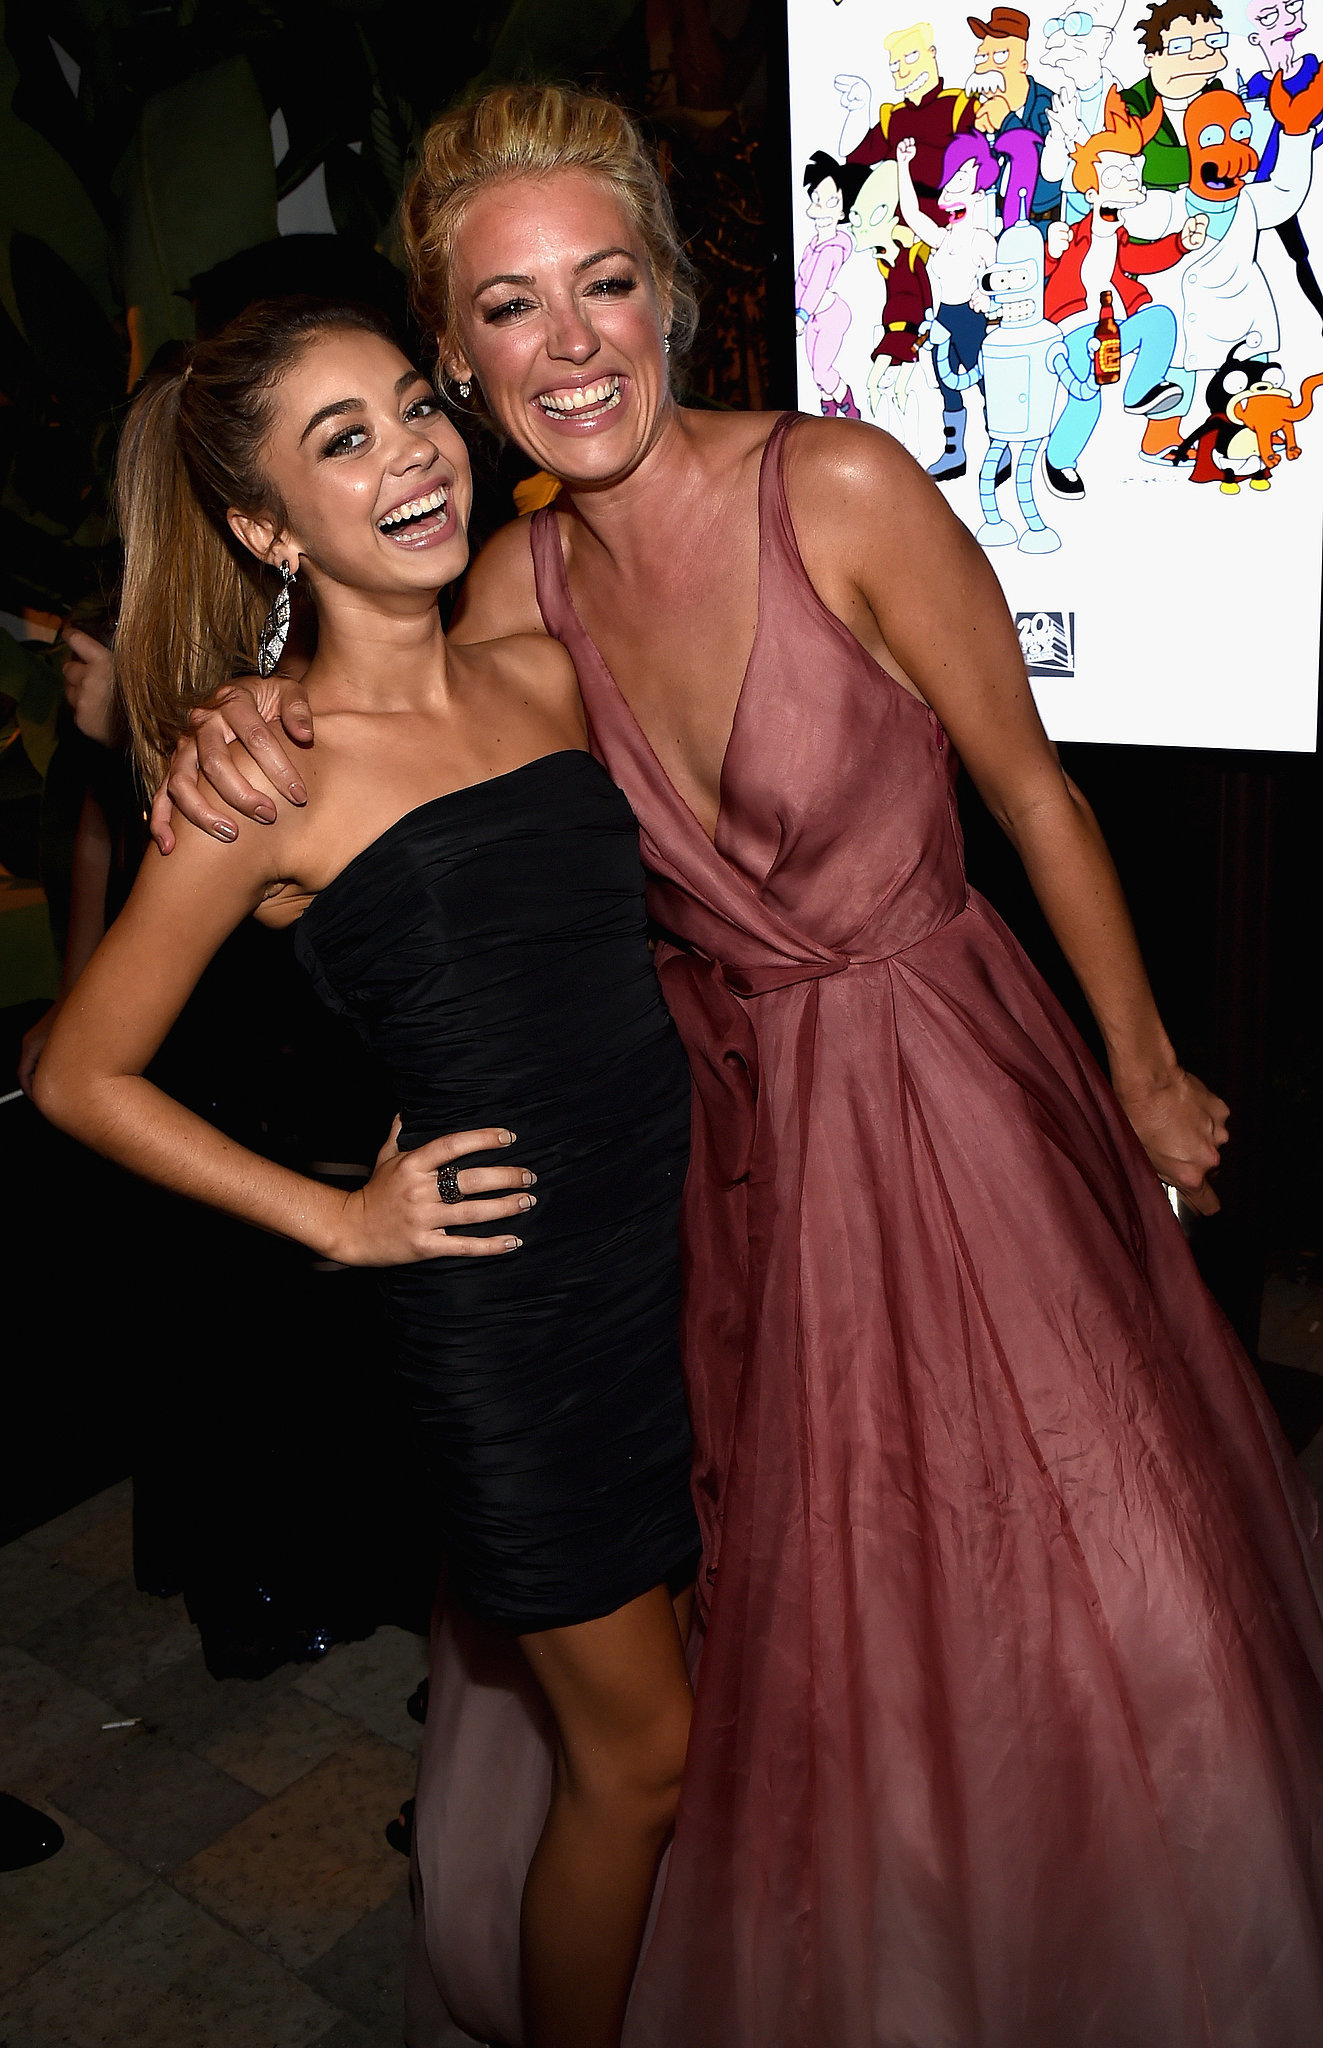 At the Fox/FX party, Sarah Hyland met up with Cat Deeley.